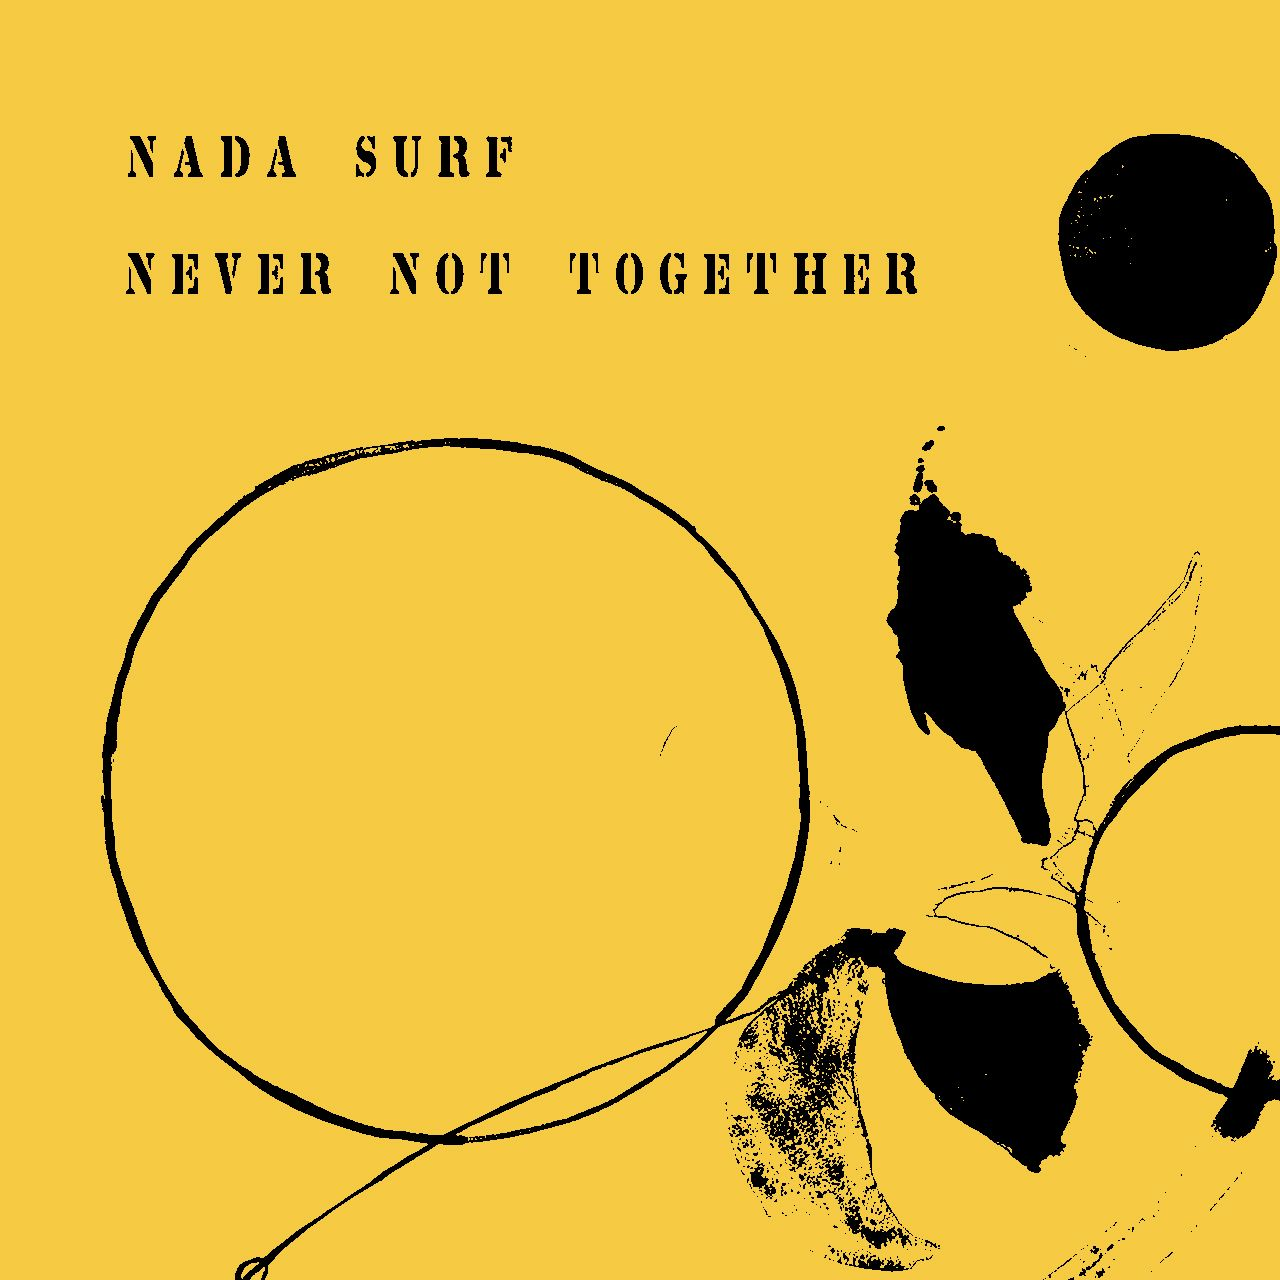 Opinion: It's interesting to listen to a band (Nada Surf) almost 20 years apart in records.